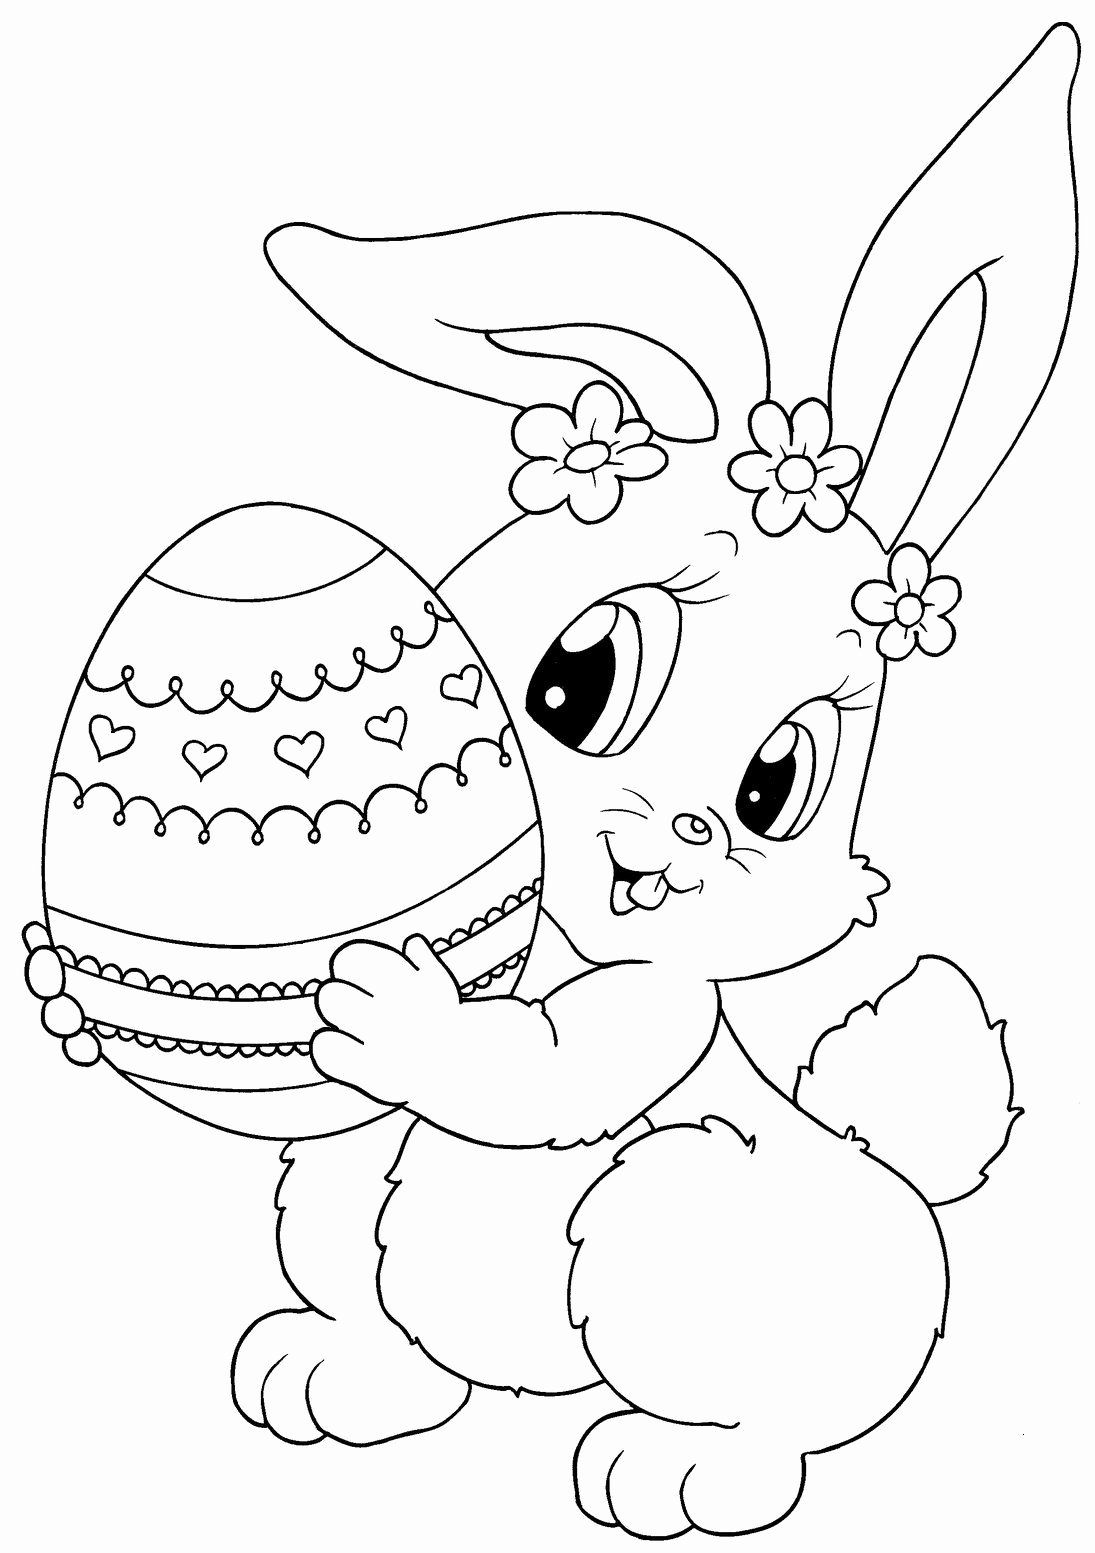 Pin By Pequeno Mozart On Coloriages Pour Lilo Easter Bunny Colouring Bunny Coloring Pages Easter Coloring Sheets